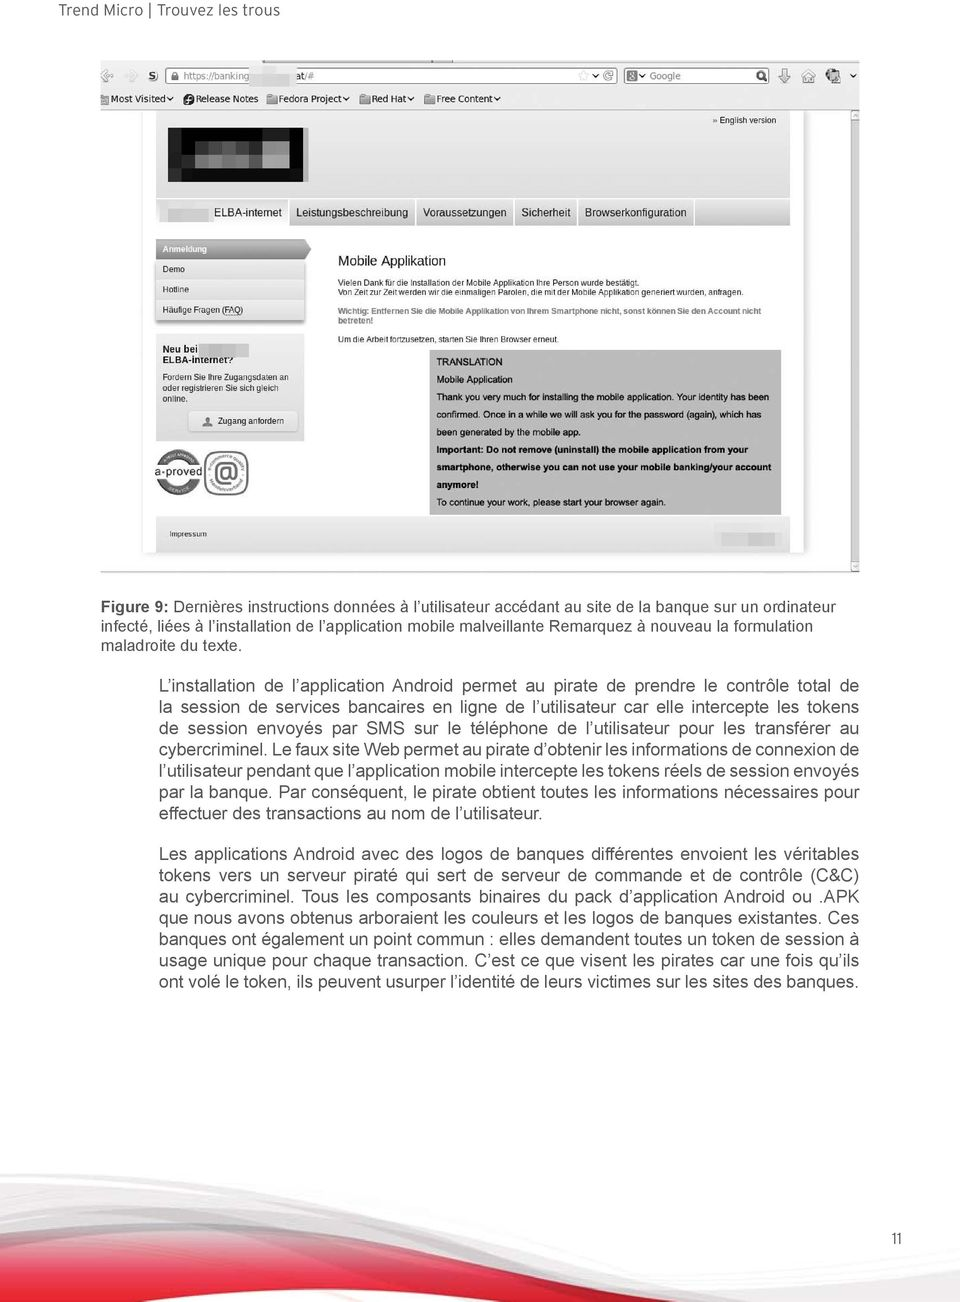 L installation de l application Android permet au pirate de prendre le contrôle total de la session de services bancaires en ligne de l utilisateur car elle intercepte les tokens de session envoyés